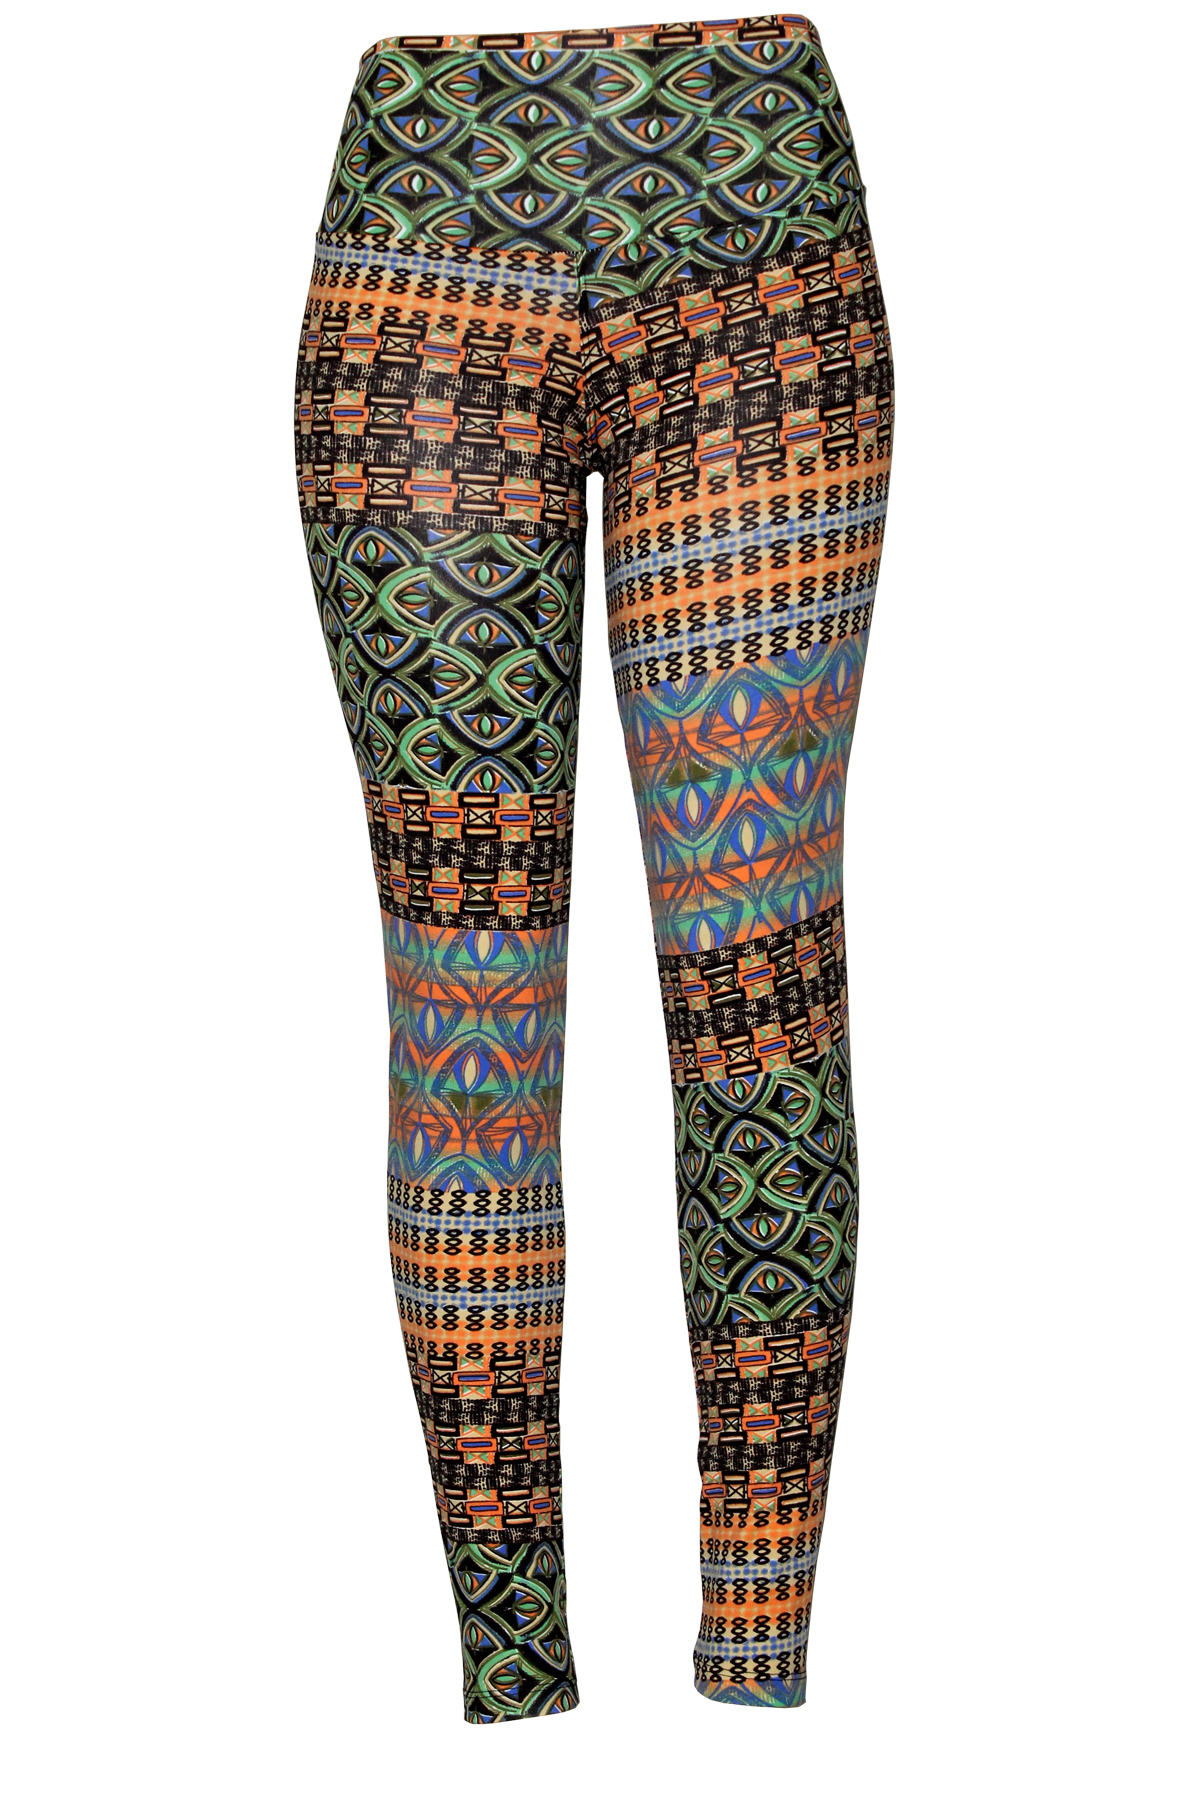 Calça legging indiana multicor